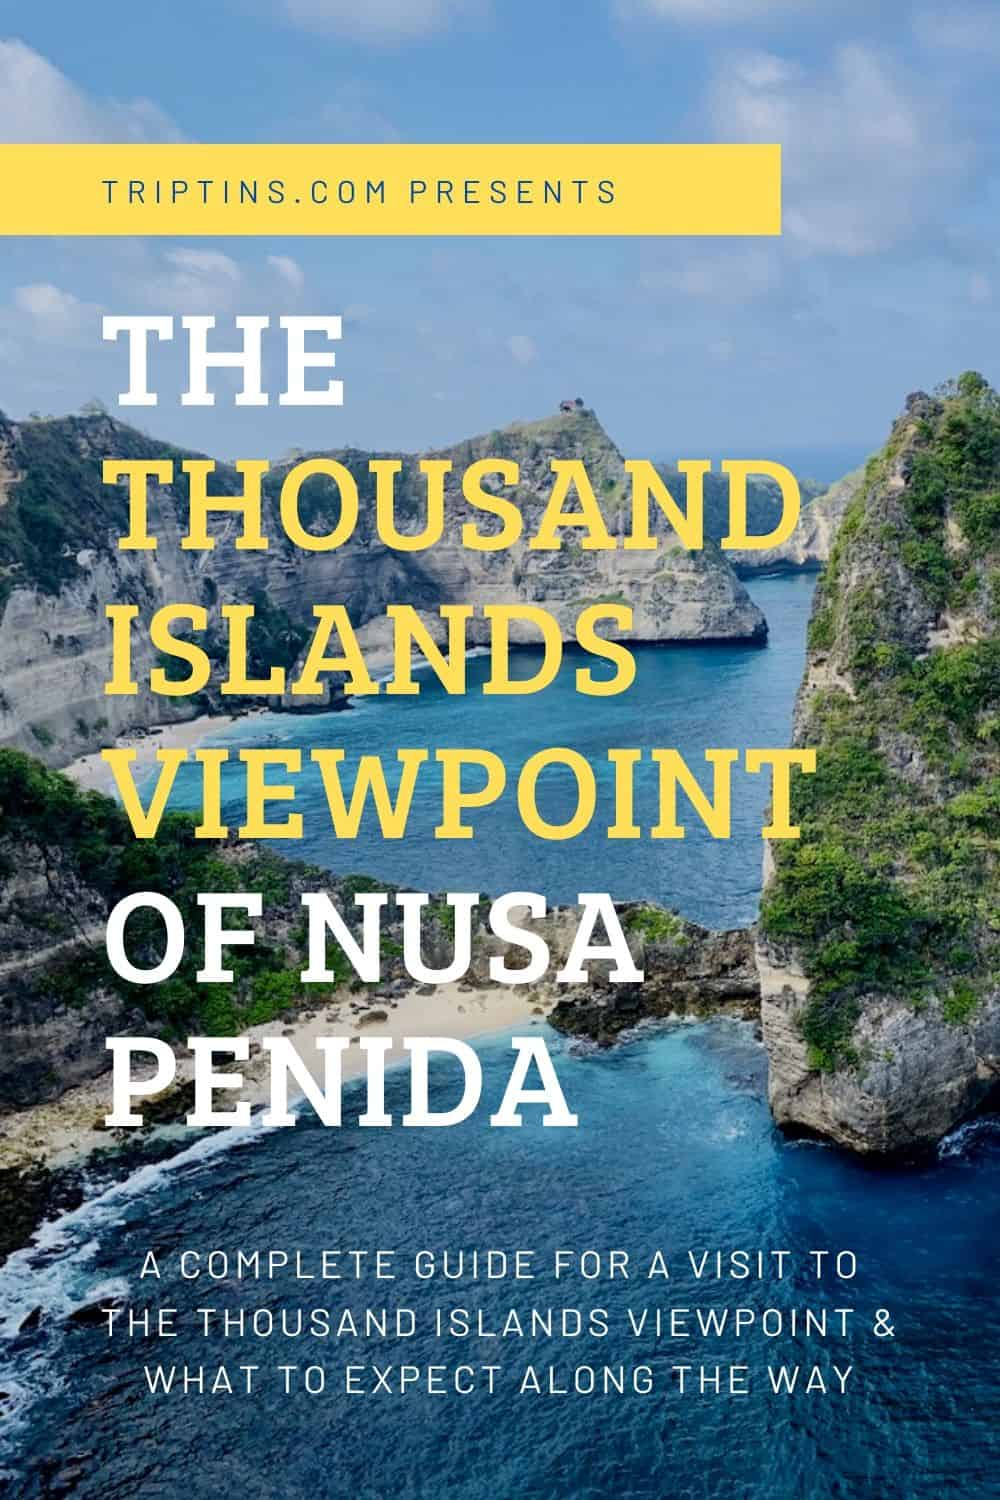 Thousand Islands Viewpoint of Nusa Penida